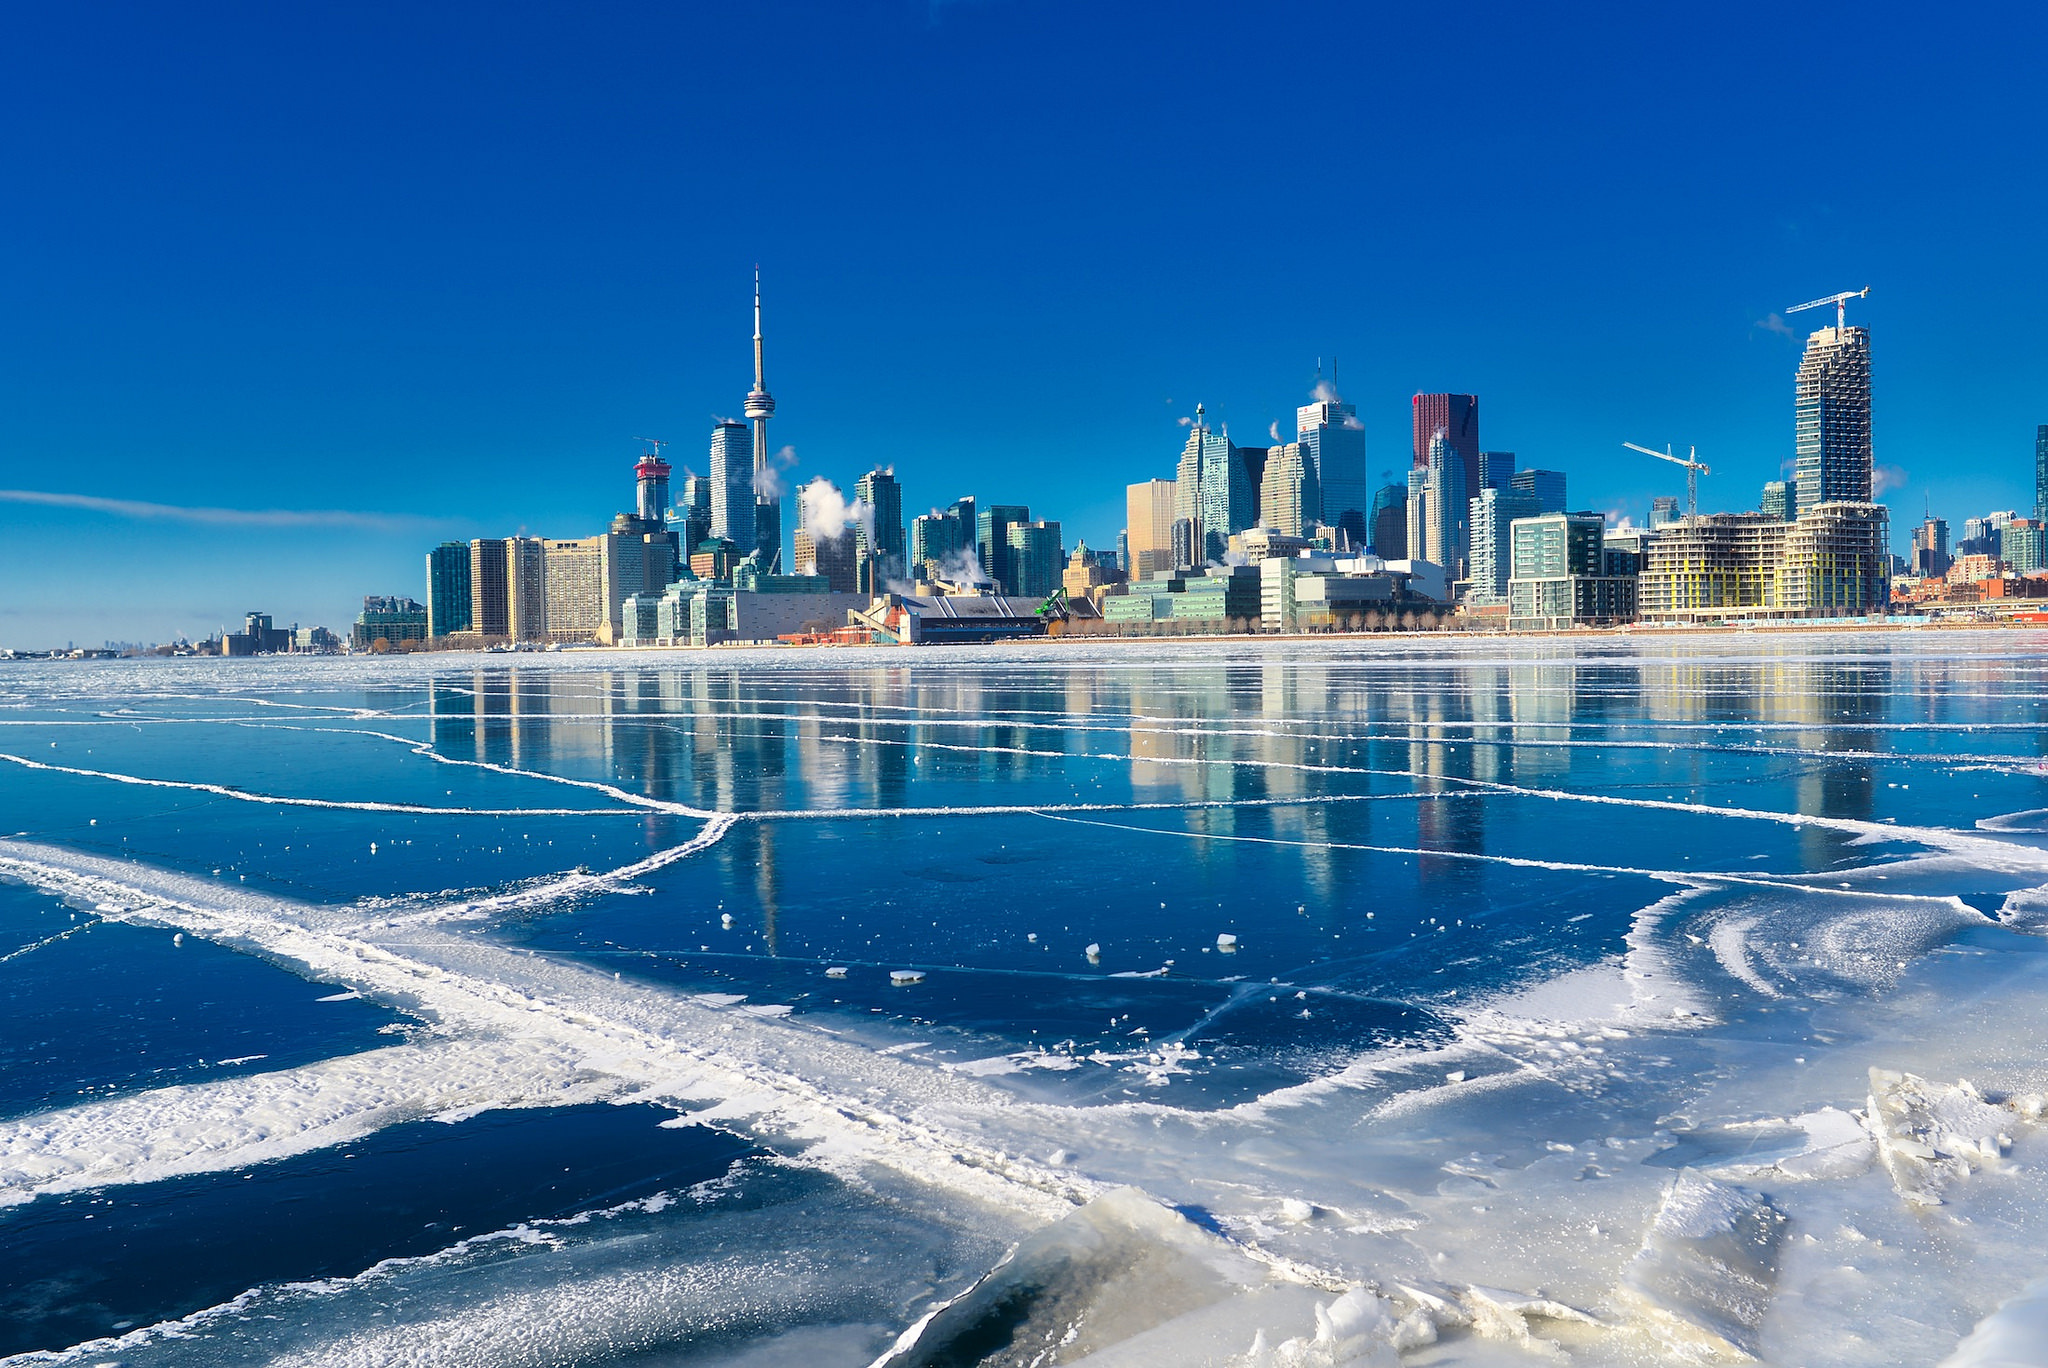 Weather Toronto: Temperatures In Toronto Are About To Drop To -13C